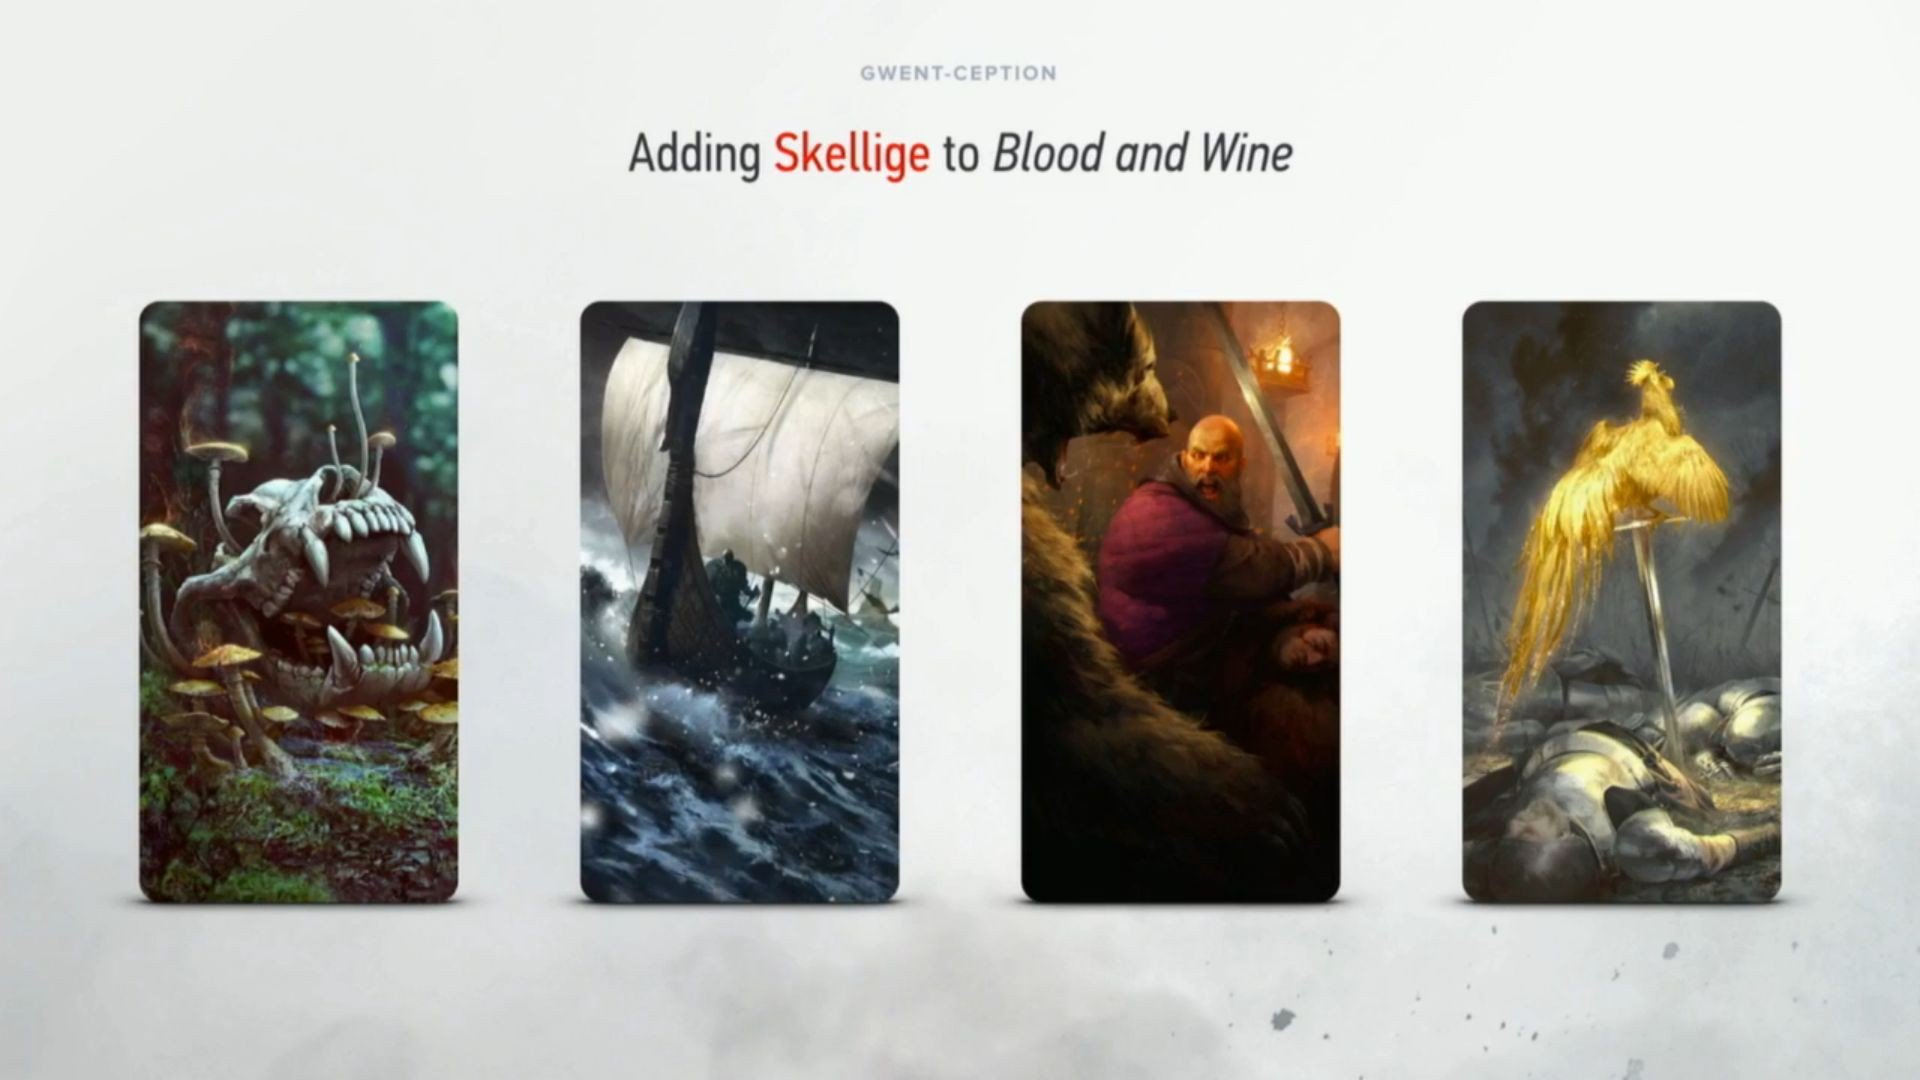 Gwent card locations the witcher 3 - Collect The Best New Gwent Cards Exclusive To The Blood And Wine Expansion To Witcher 3 With These Locations Showing You Where To Go To Get The Very Best